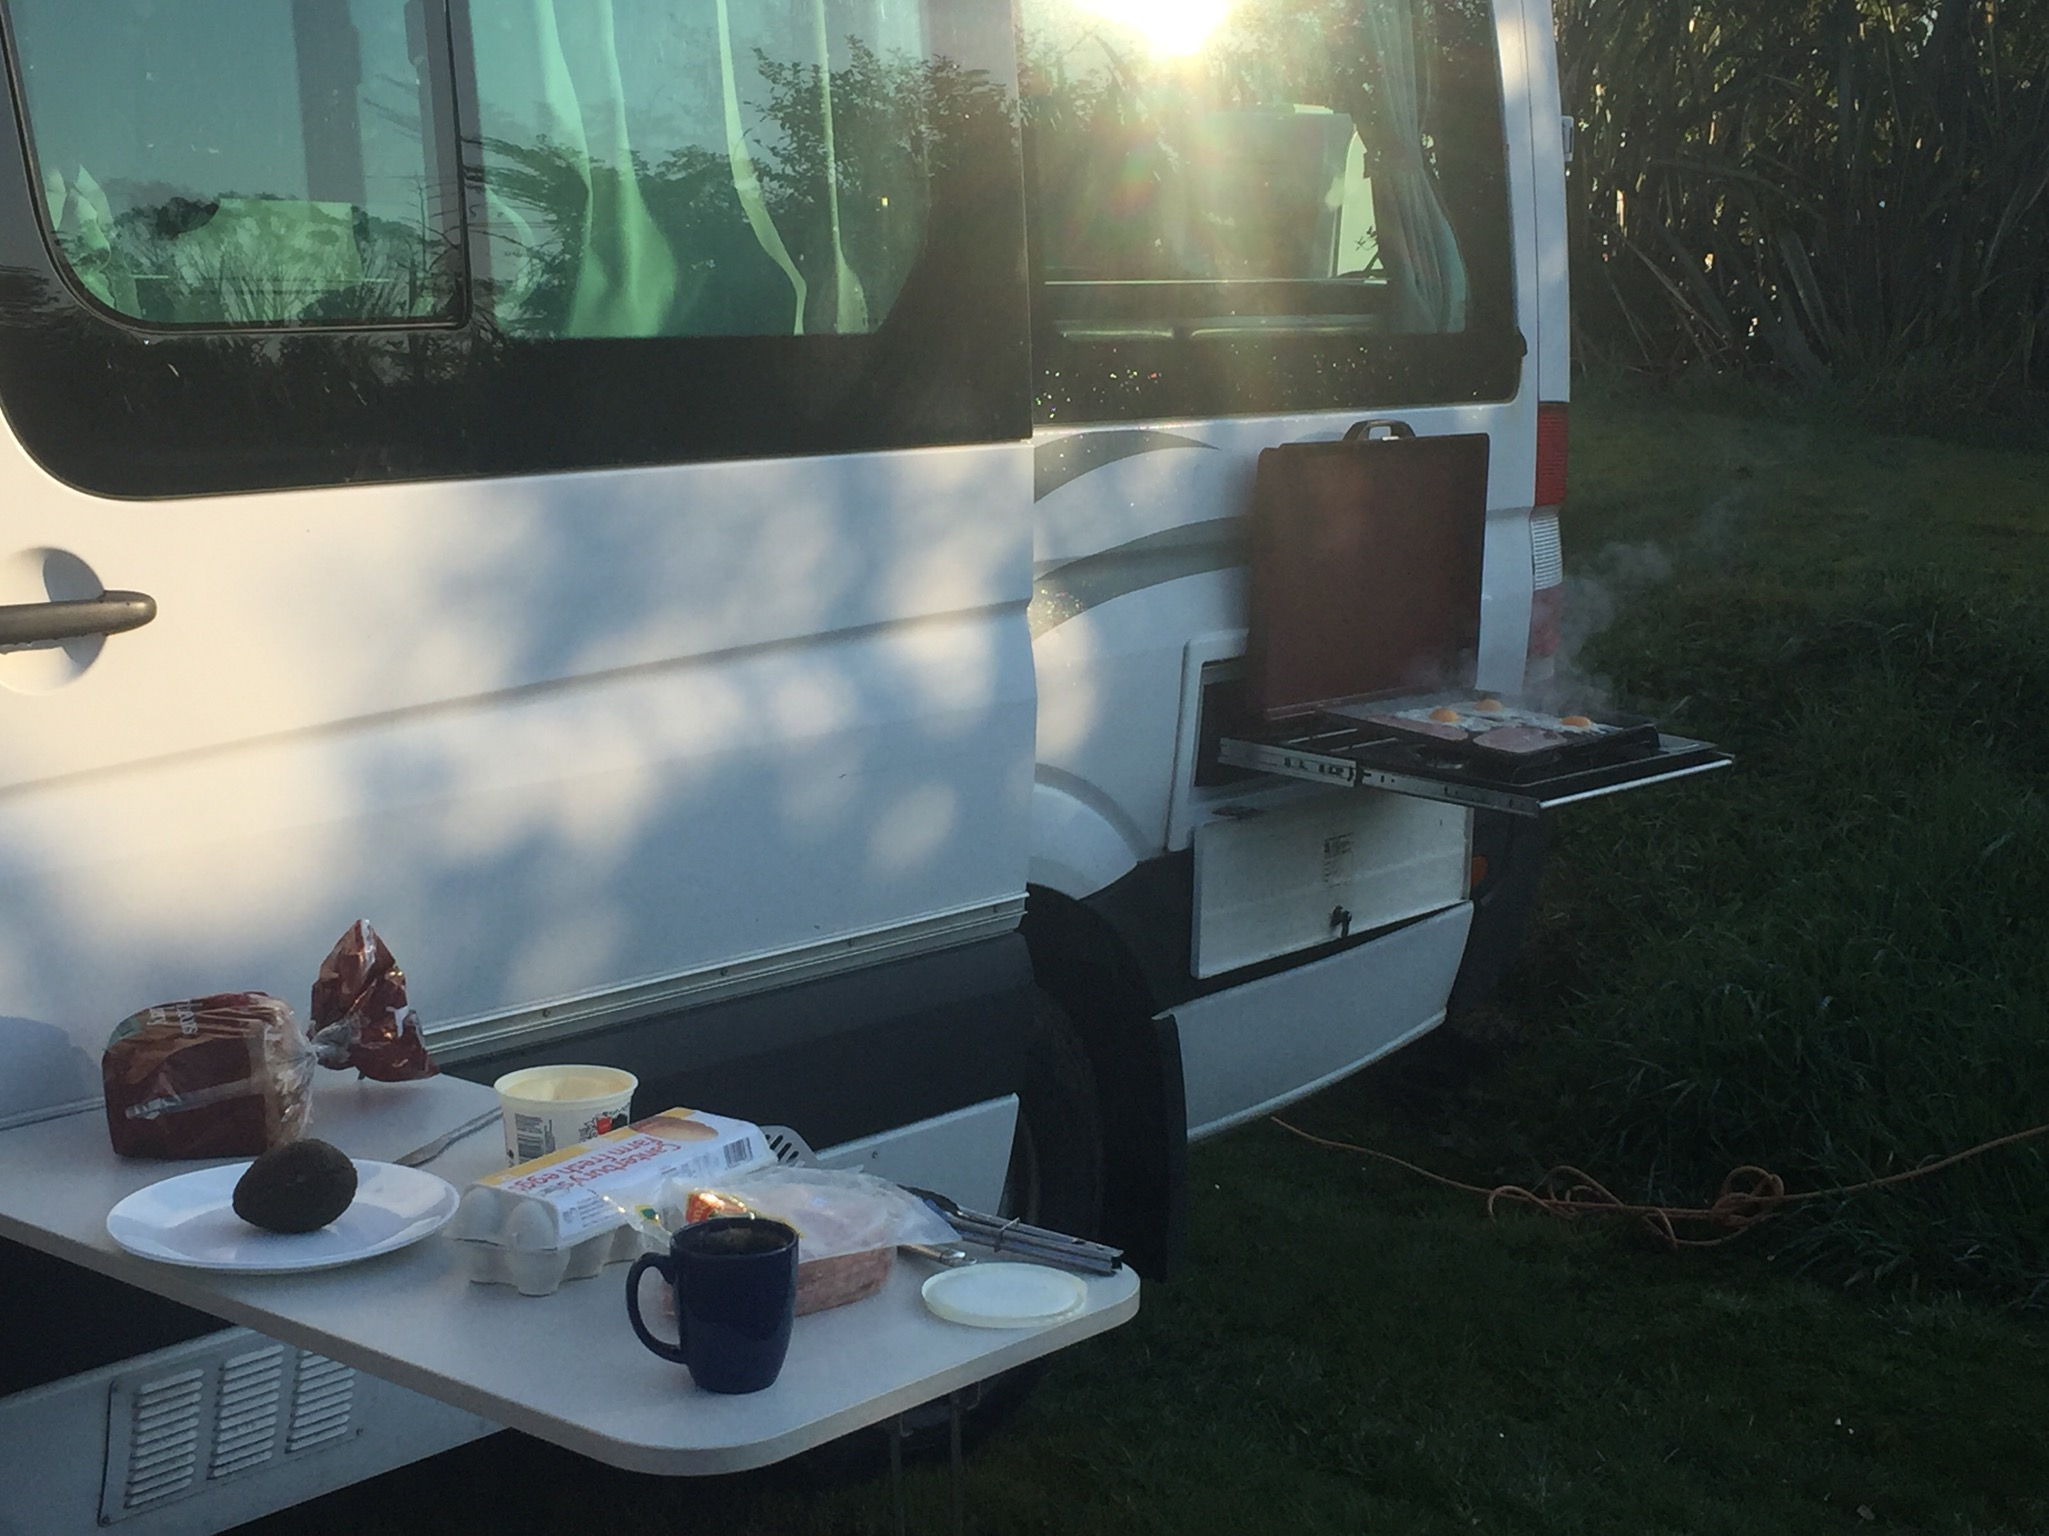 Doesn't hurt to have a nice outdoor kitchen while camping.